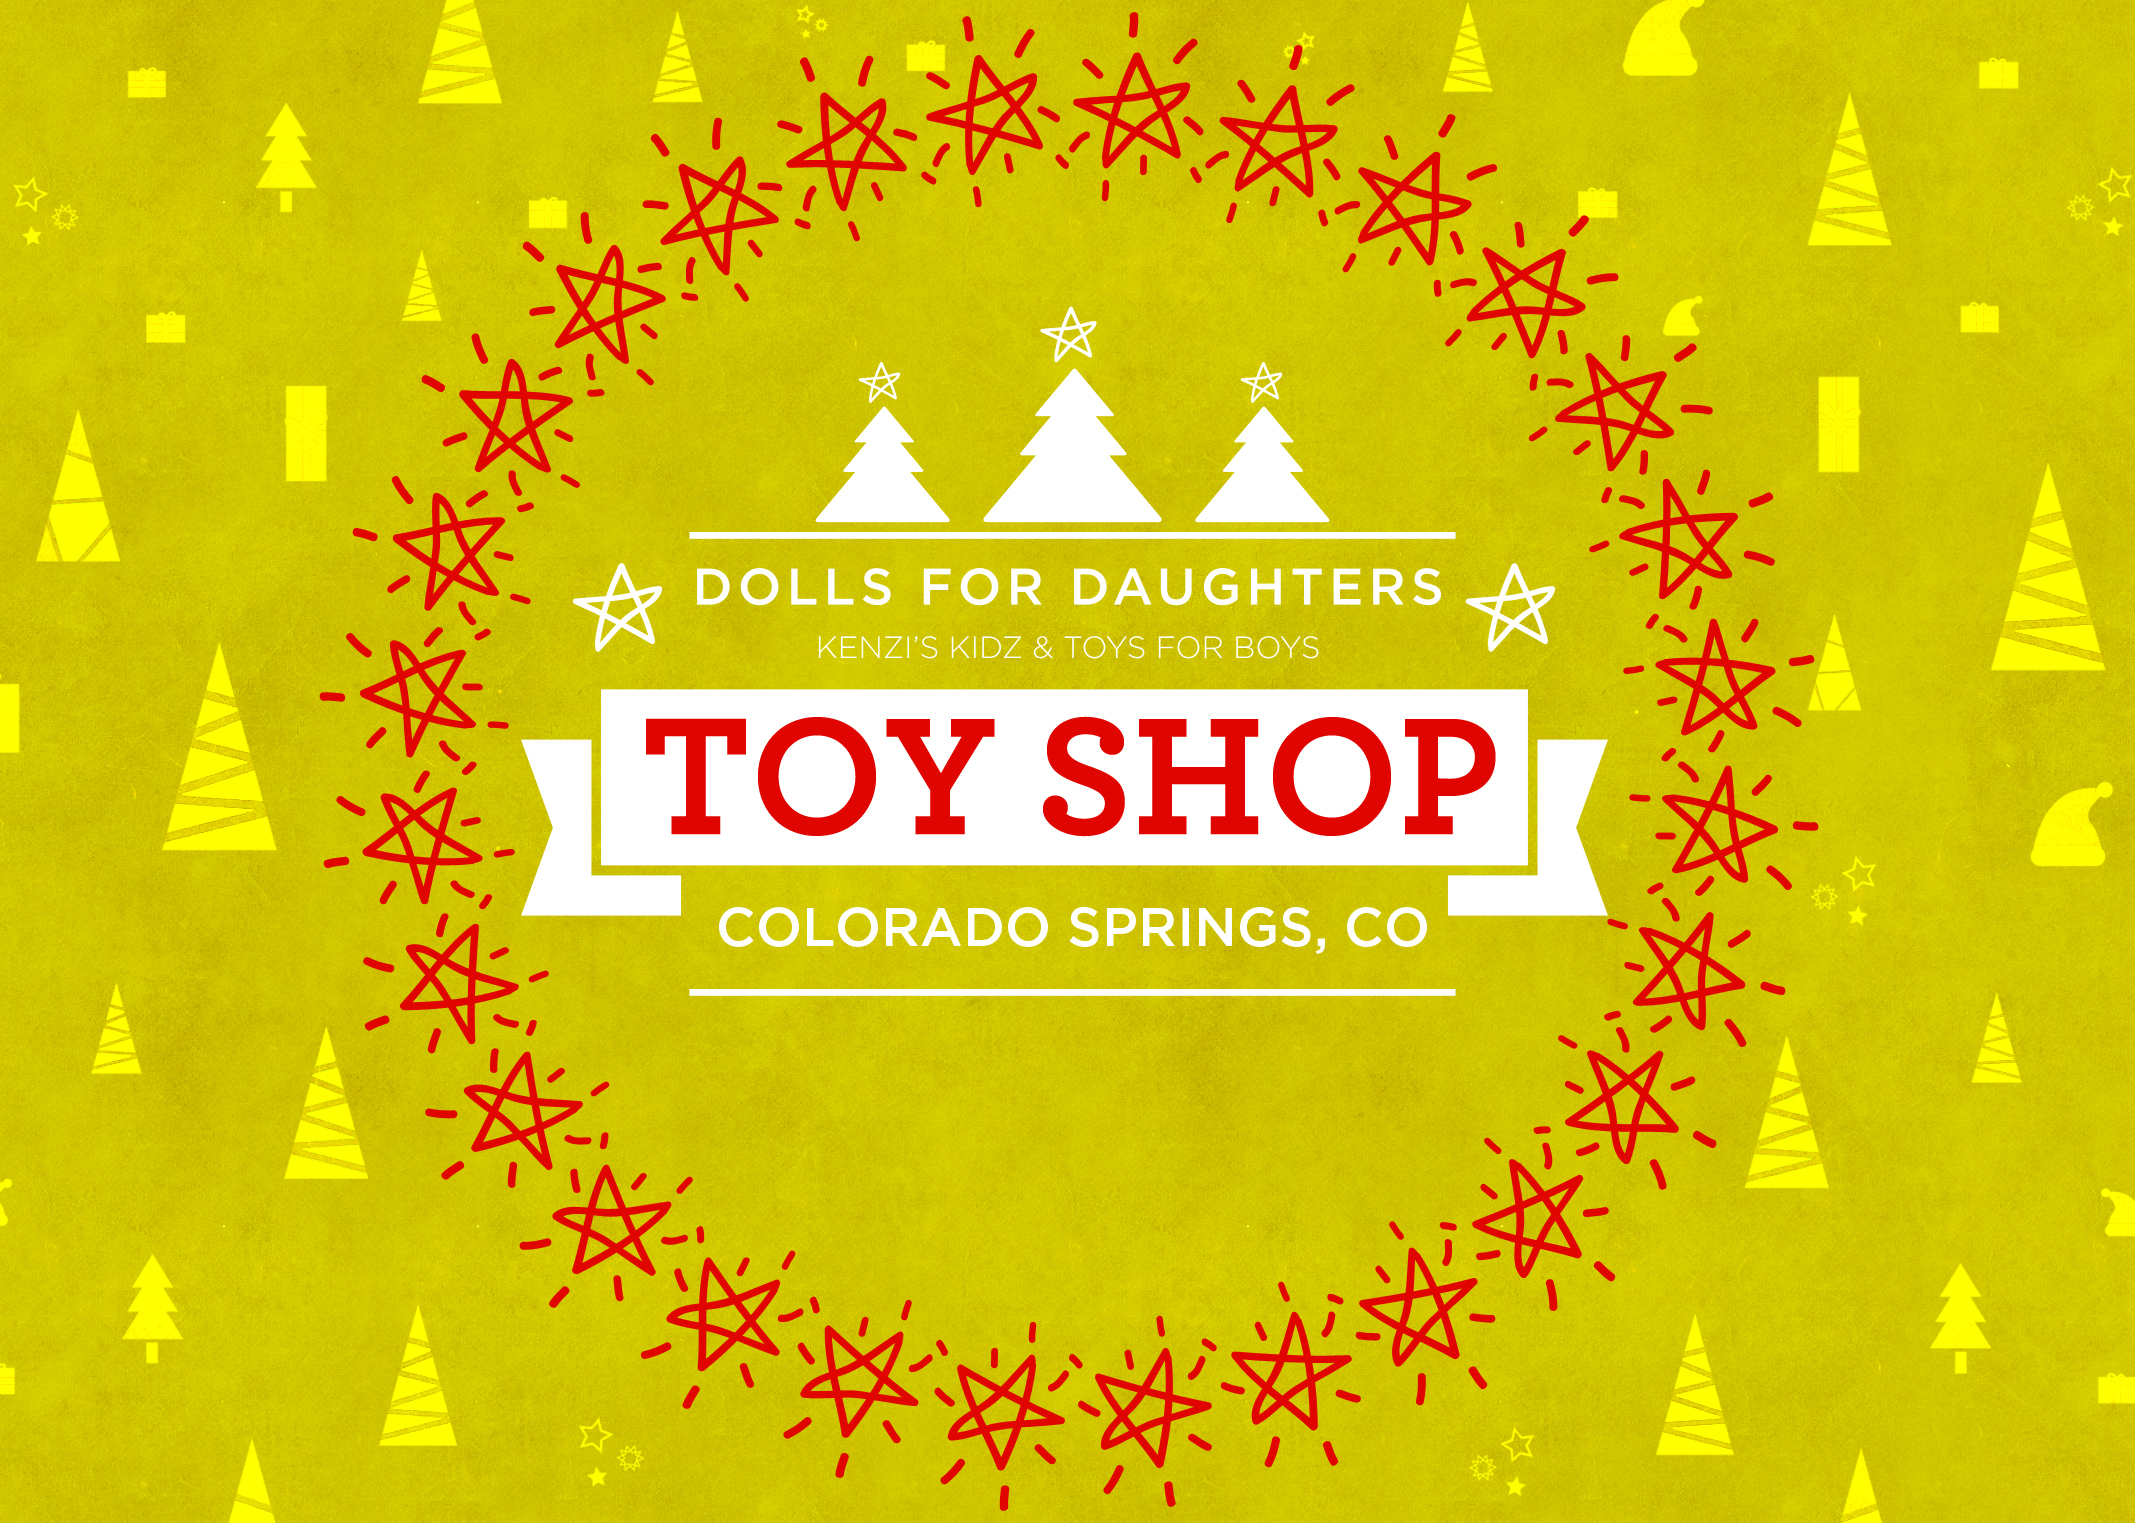 Toy Drive Colorado Springs